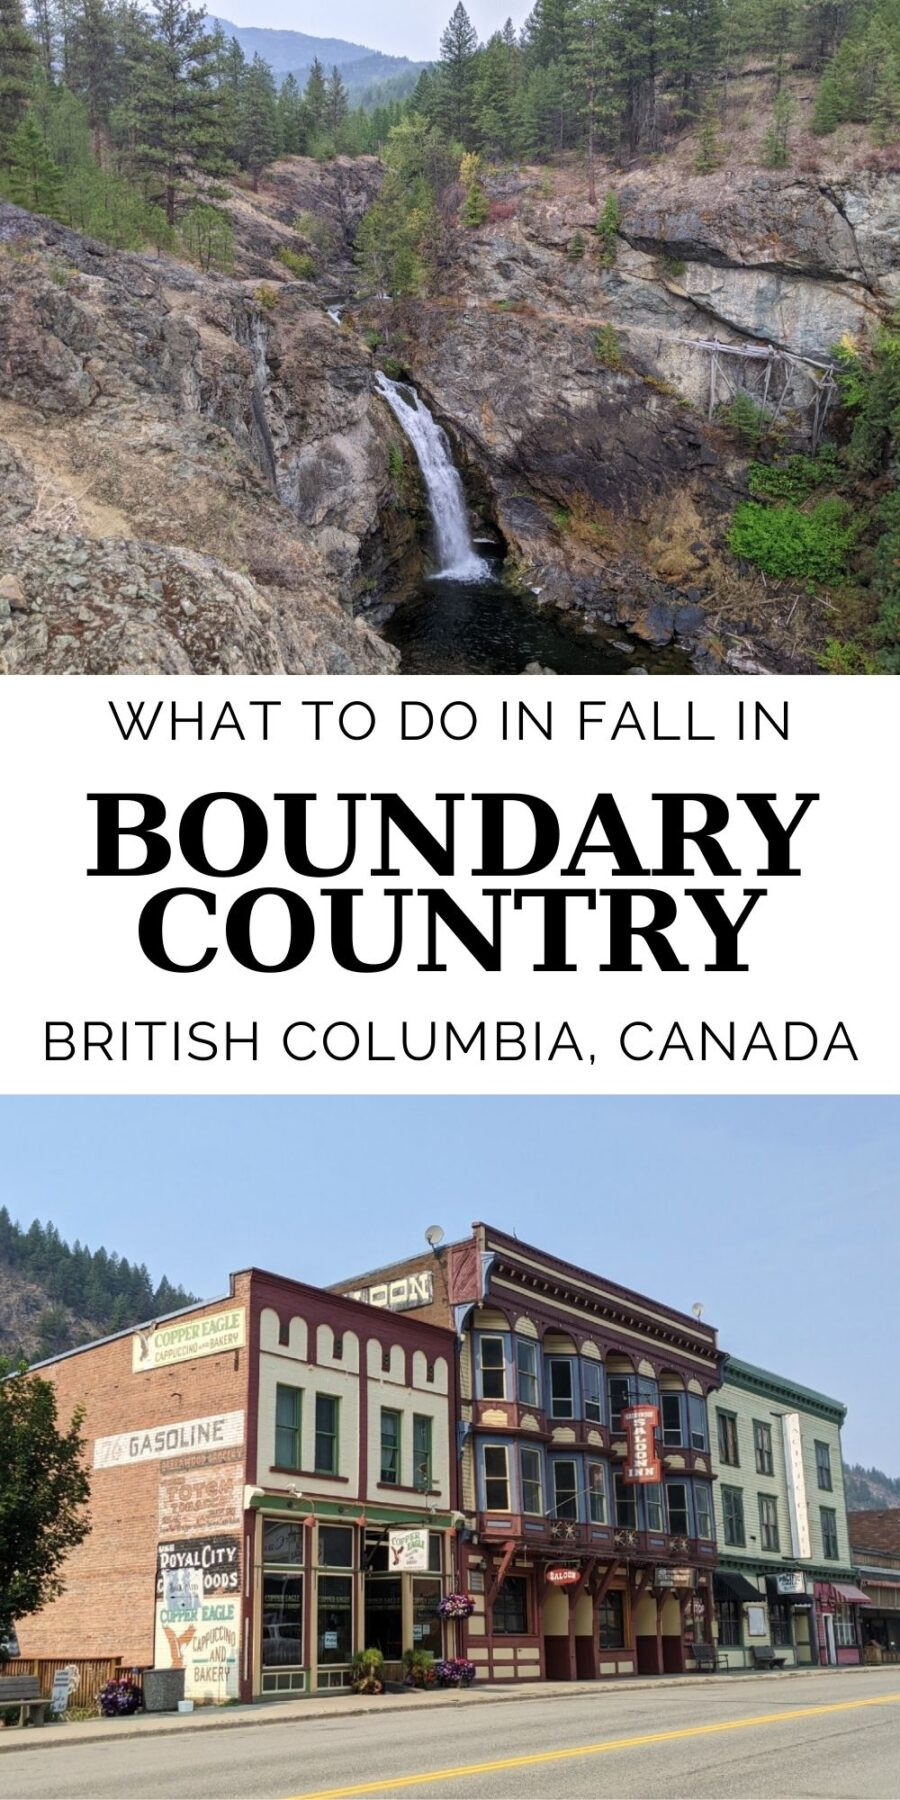 Boundary Country is one of those 'hiding in plain sight' destinations. I knew about it but wasn't sure what was there. And now, after visiting, I know why - people are trying to keep this peaceful paradise all to themselves! This relaxed, scenic region in southern British Columbia is the ideal destination for a fall getaway. And with such wide, open landscapes and unlimited outdoor adventure on offer, that peaceful factor isn't going anywhere anytime soon.